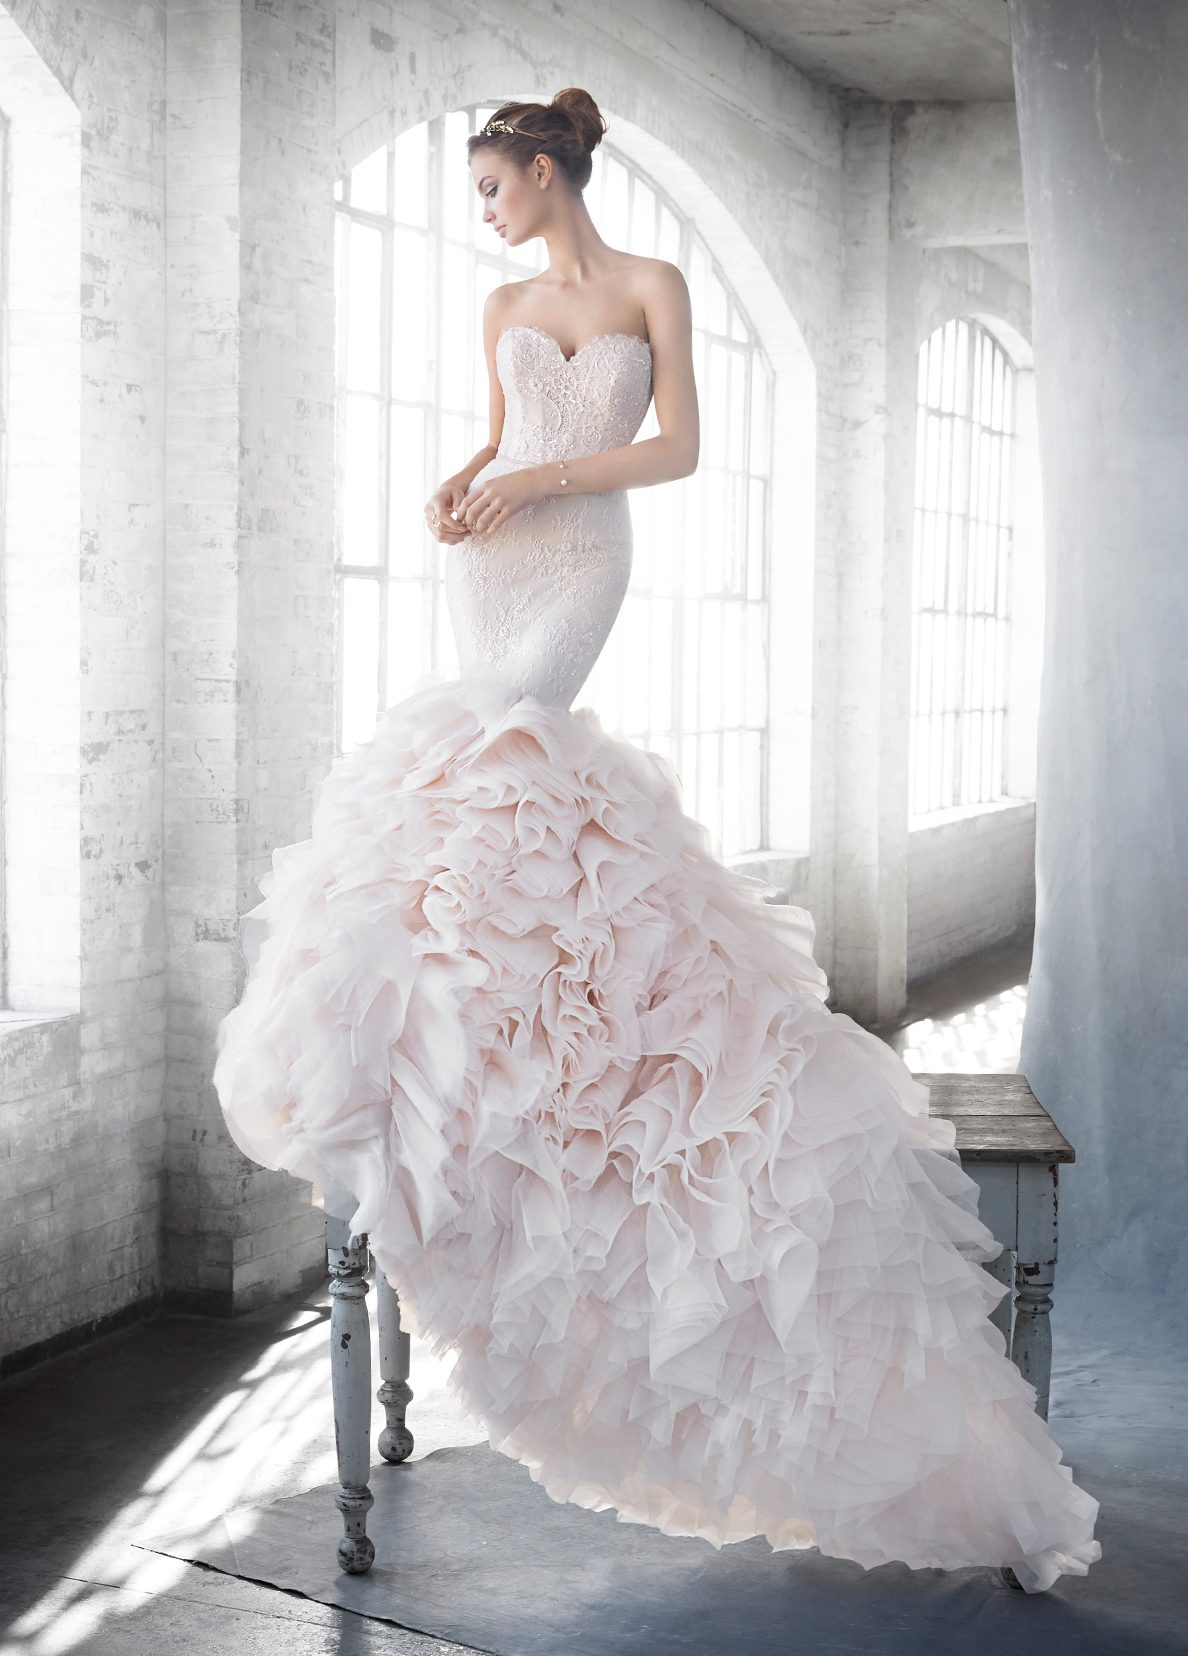 Custom Wedding Dress S Dallas Tx : Lazaro bridal fit flare gown strapless sweetheart beaded lace